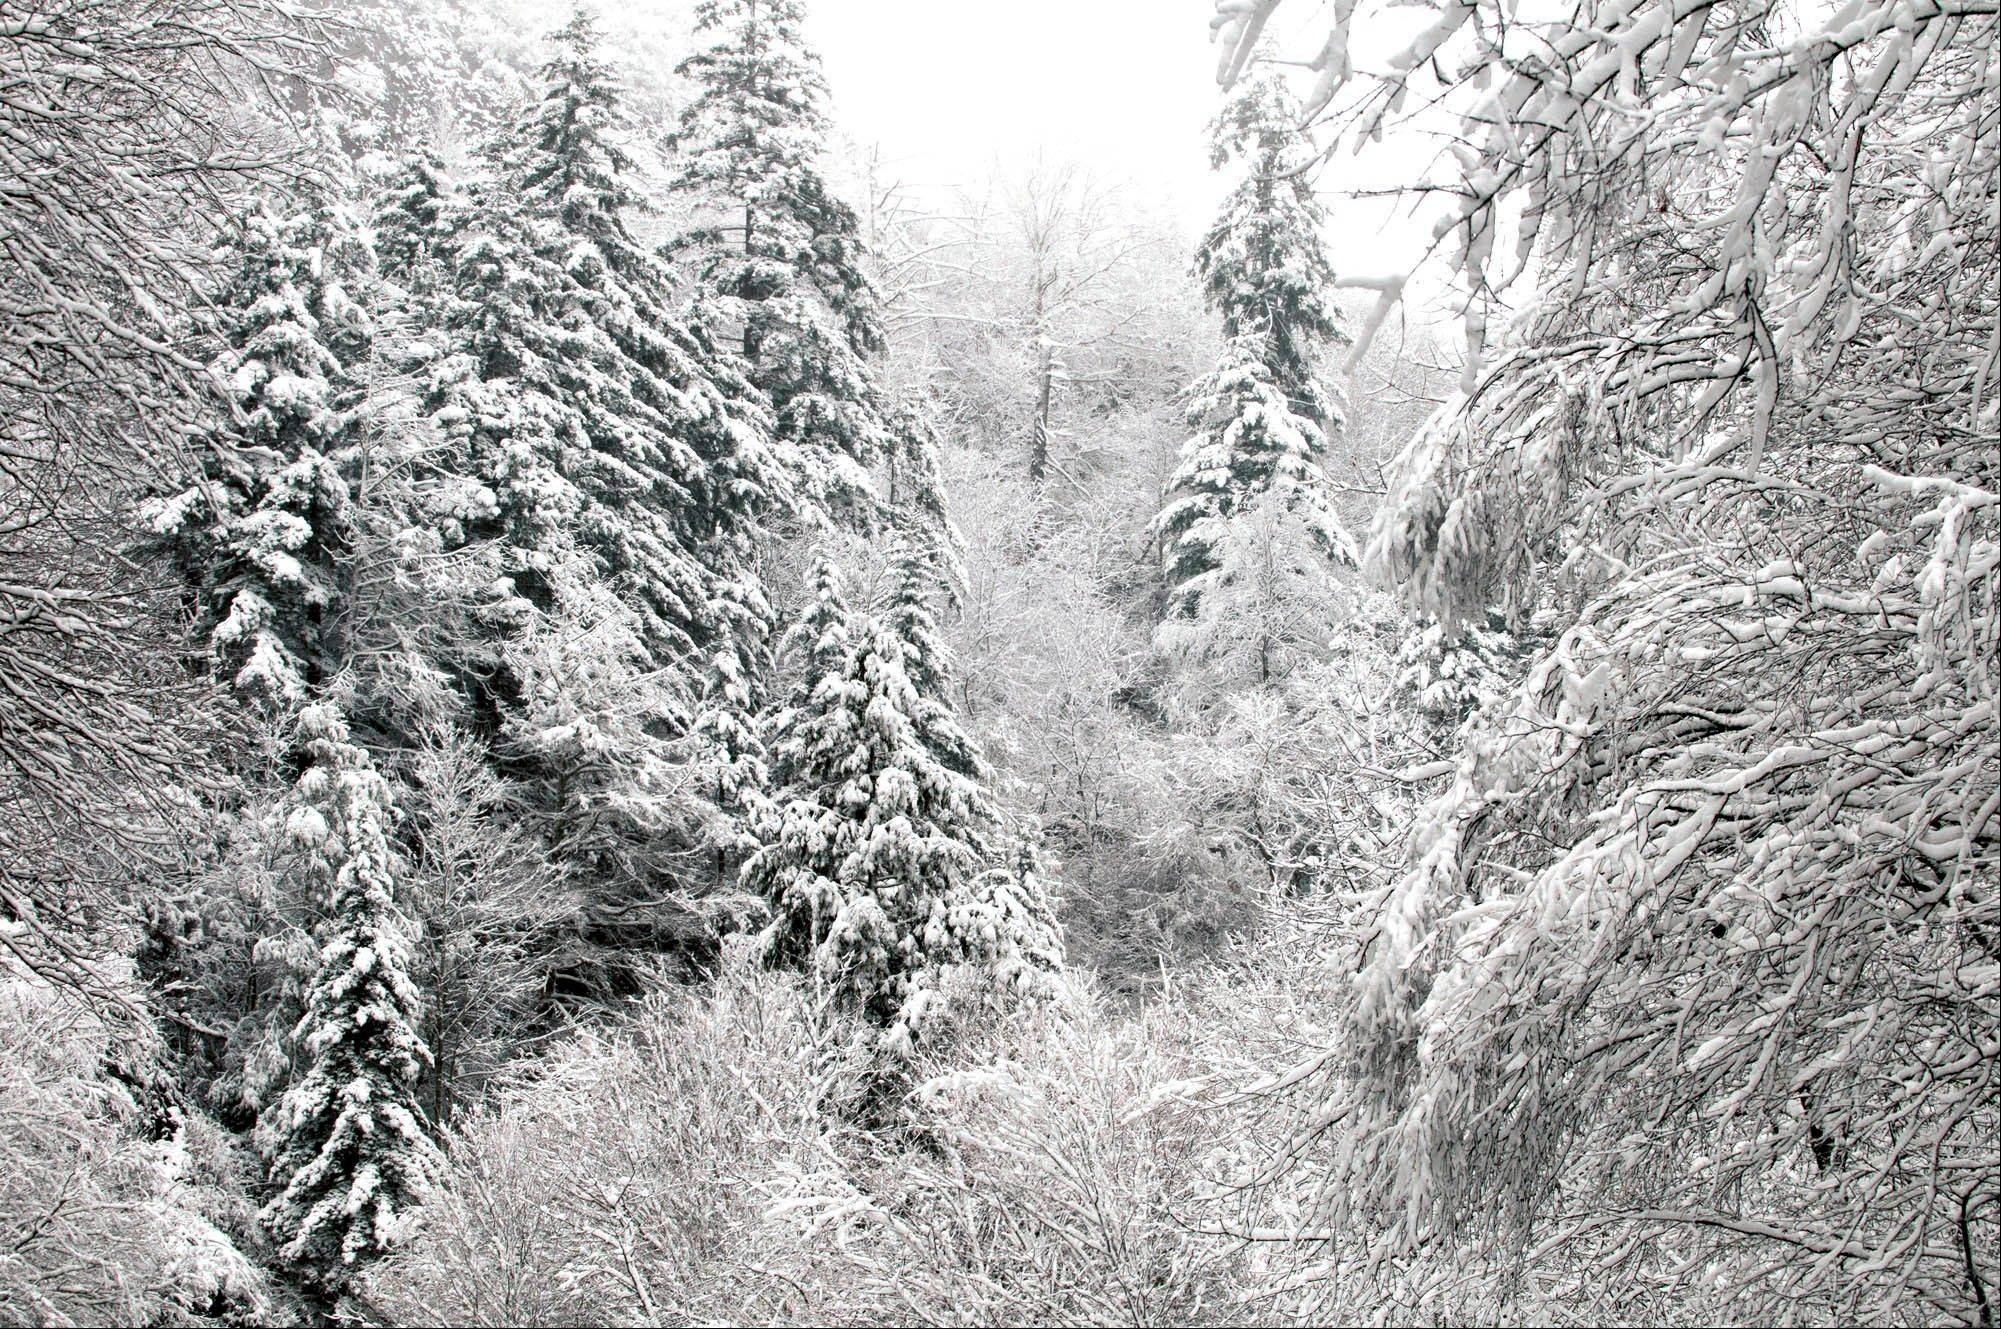 Snow-covered trees are seen after an overnight storm Monday, Oct. 29, 2012, in the Great Smoky Mountains National Park, near Gatlinburg, Tenn. Rangers expect more snow and high winds in the days to come as fallout from the storm pounding the East Coast.